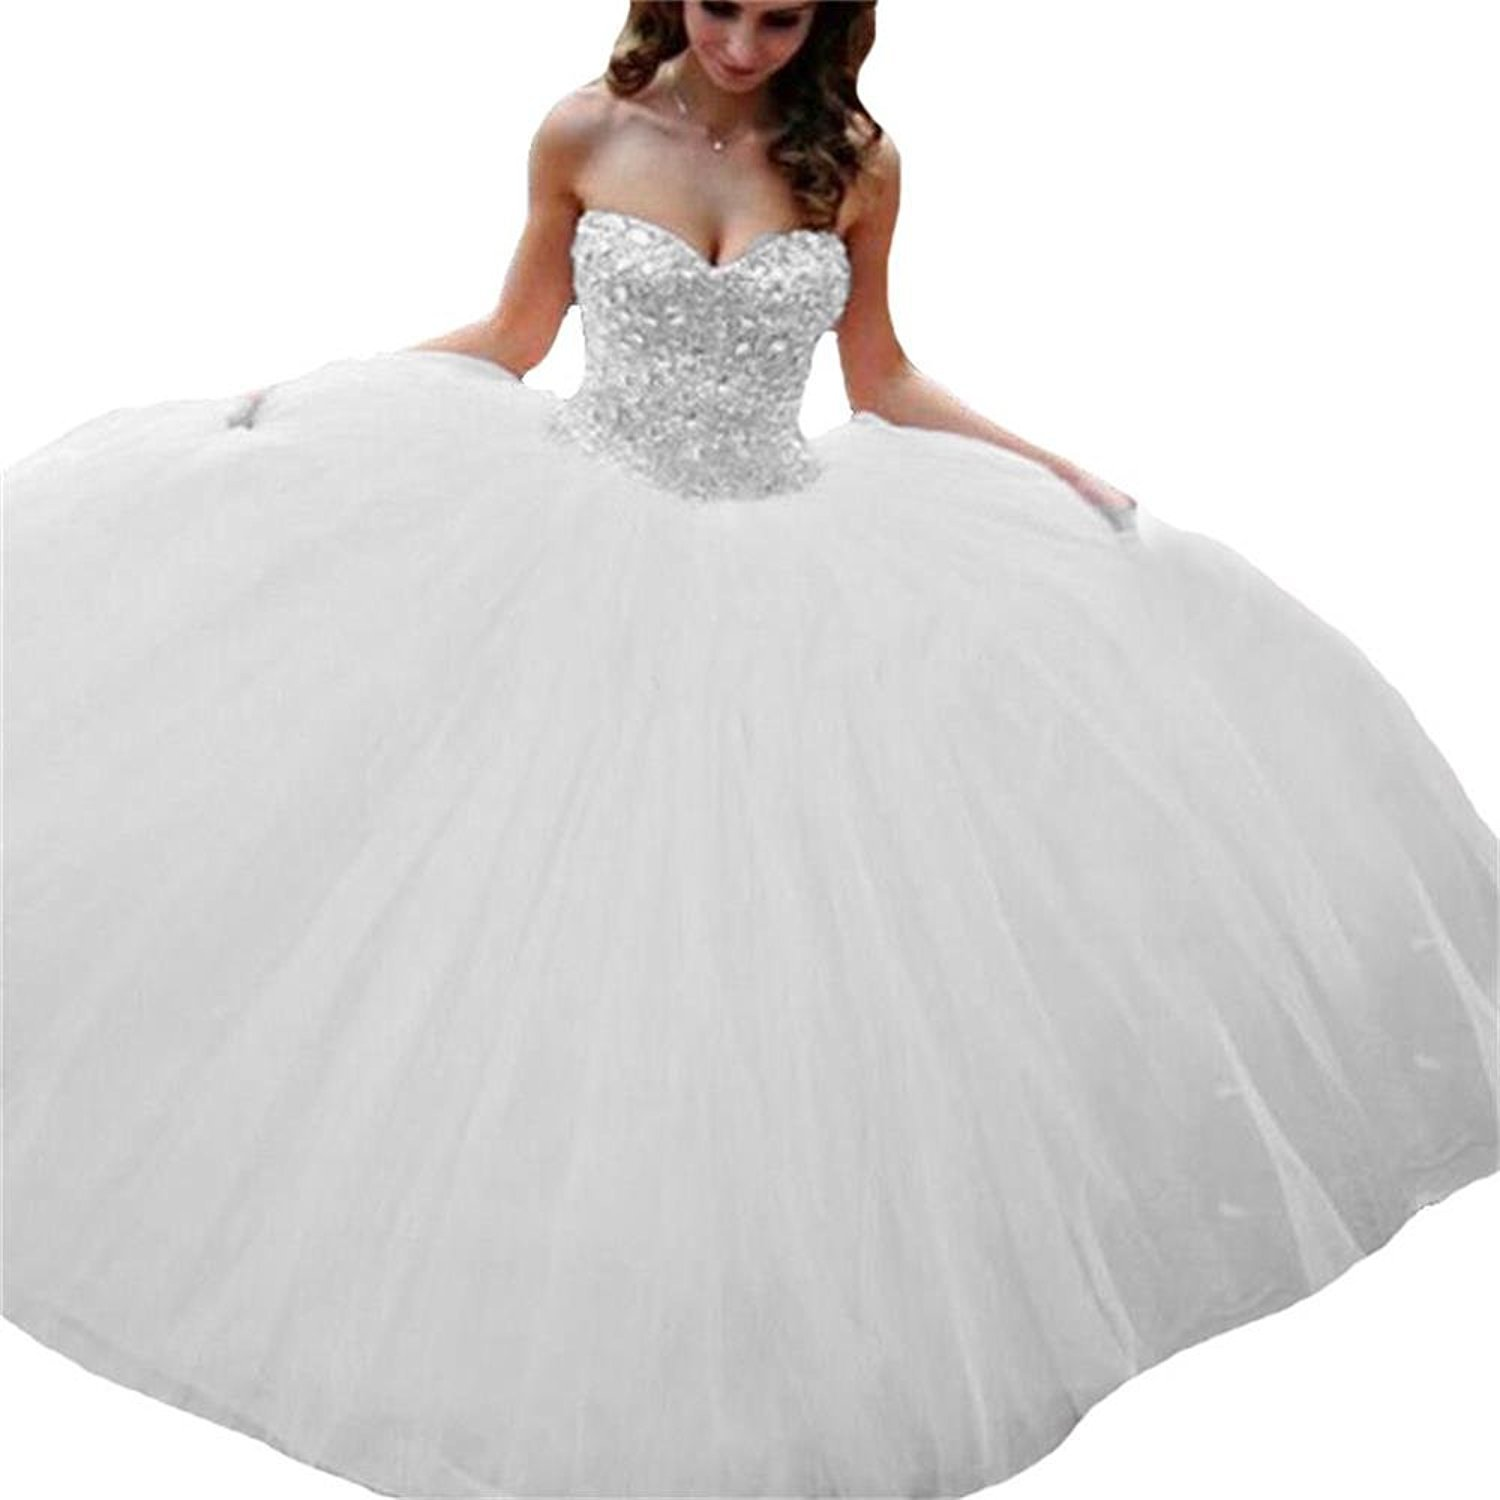 22a0be5c31 Amazon.com  Meledy Women s Sweetheart Beading Bodice Backless Ball Gown  Quinceanera Dresses  Clothing